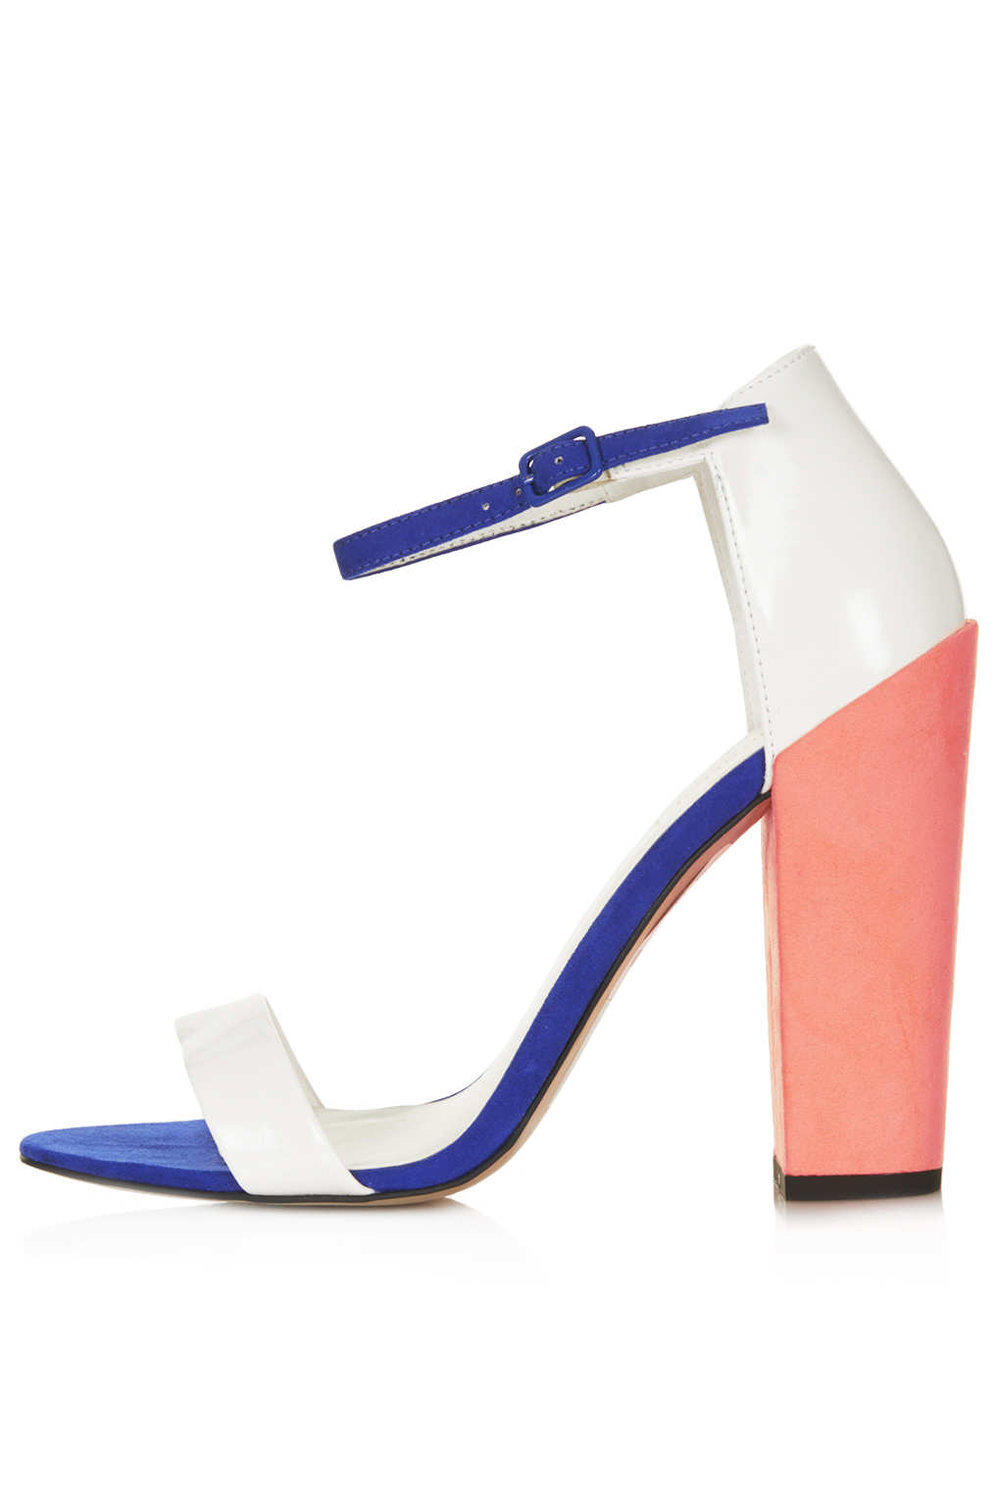 topshop-color-block-heels.jpg